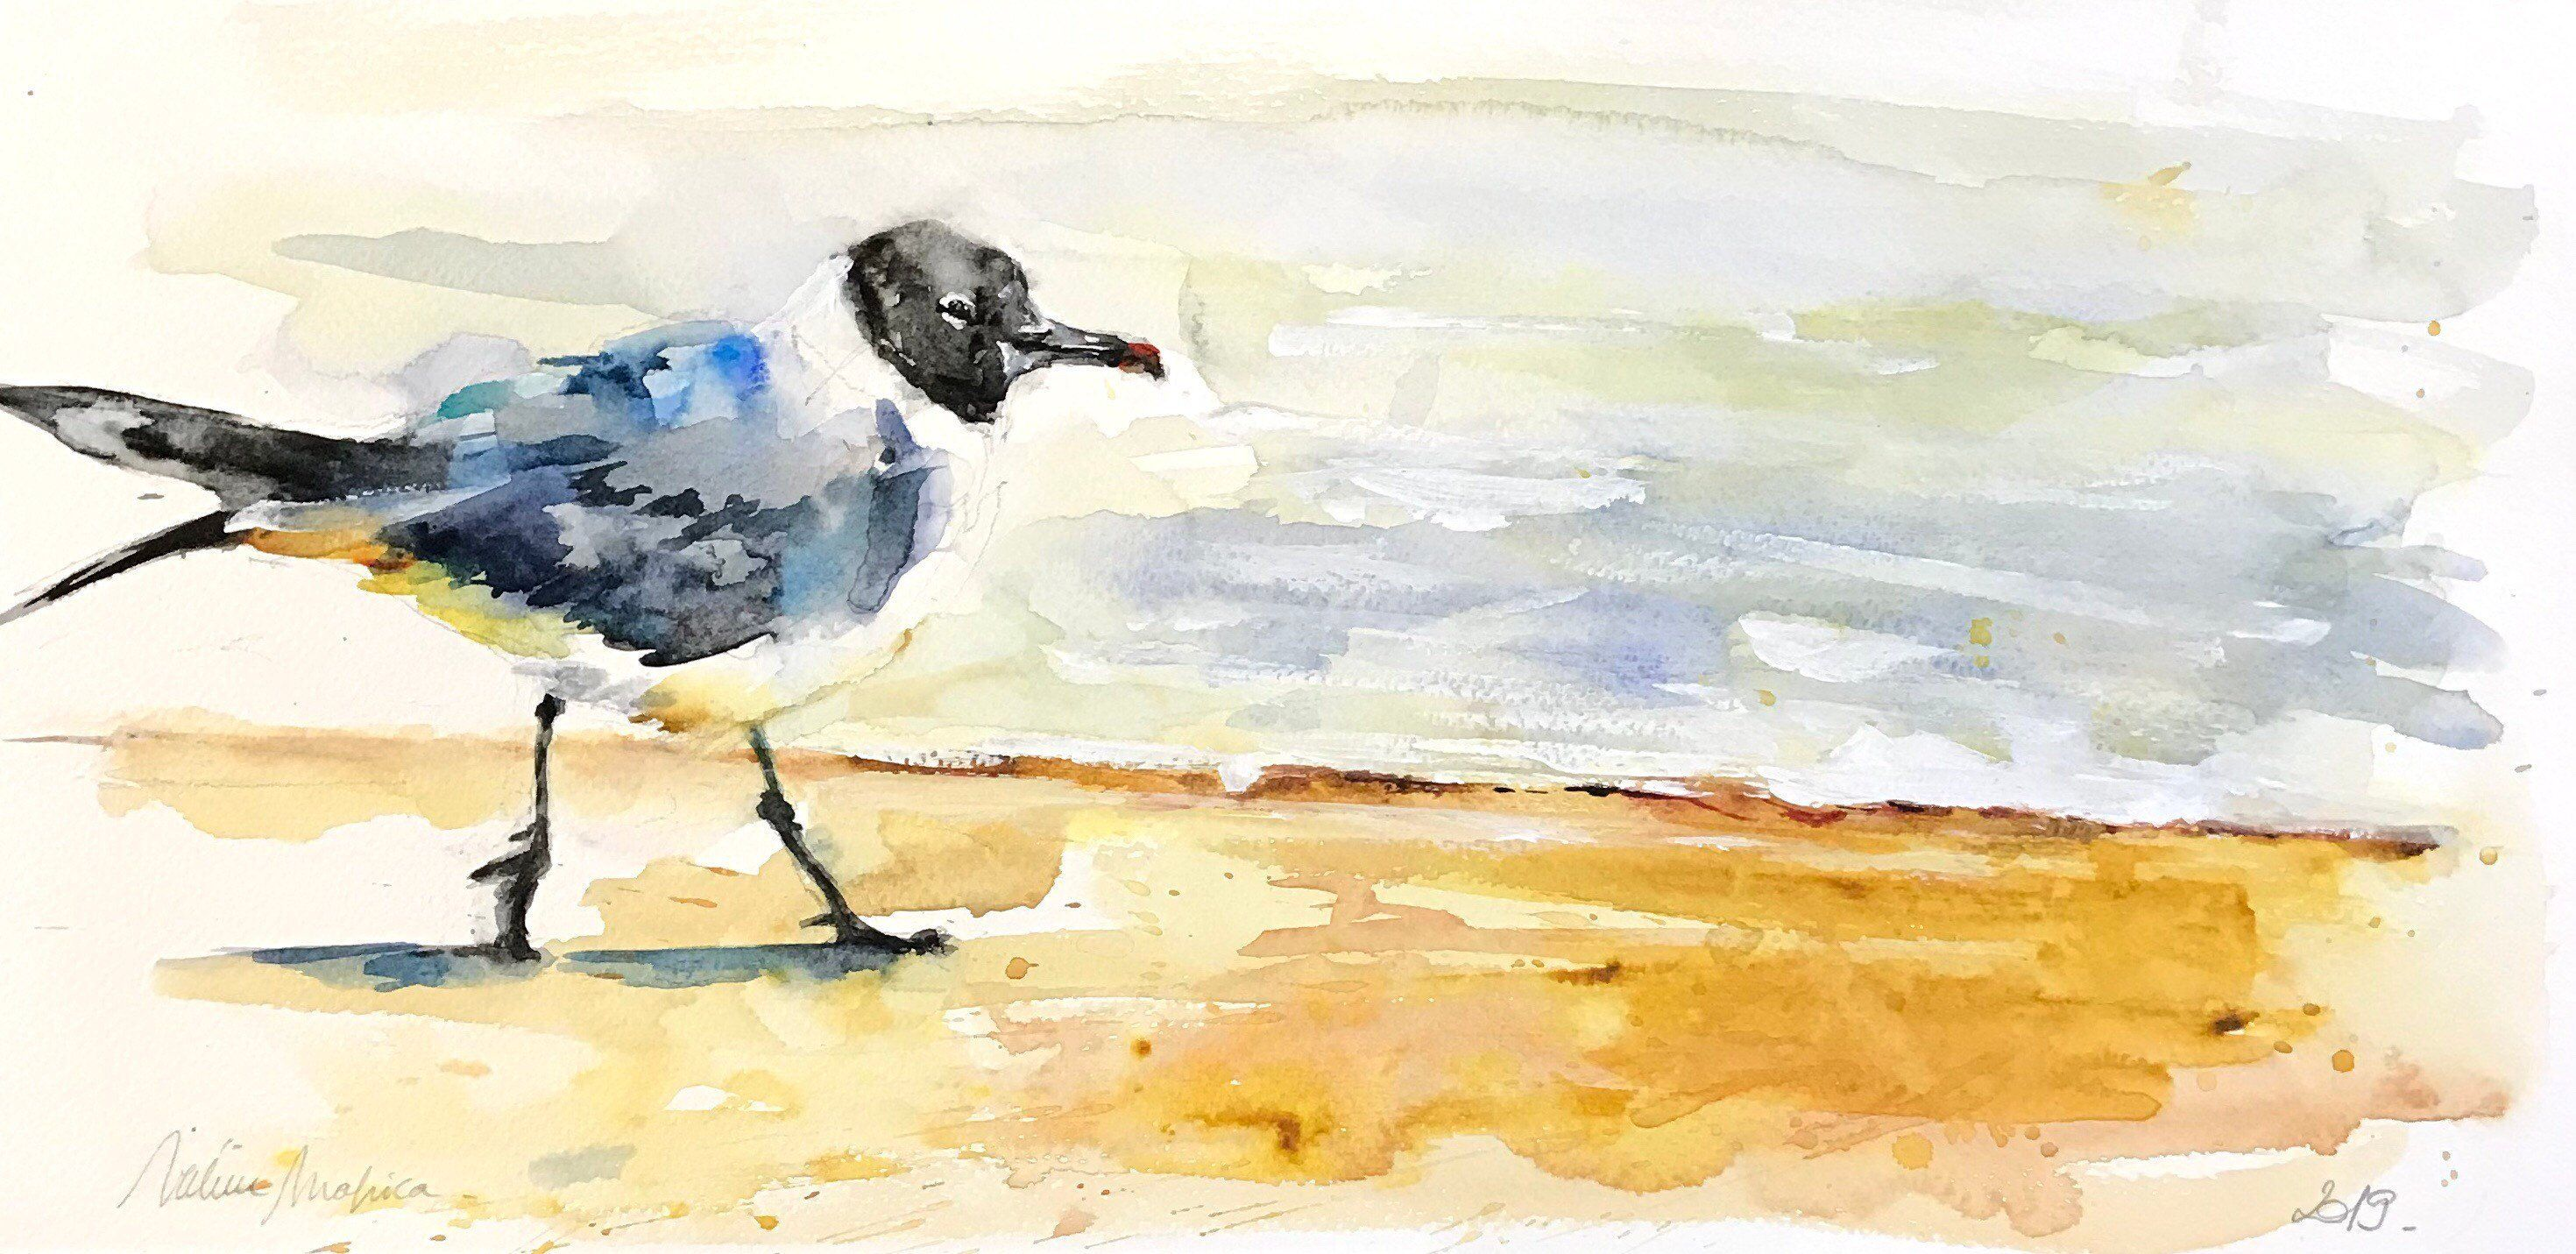 Aquarelle Peinture Originale La Mouette Watercolor Painting